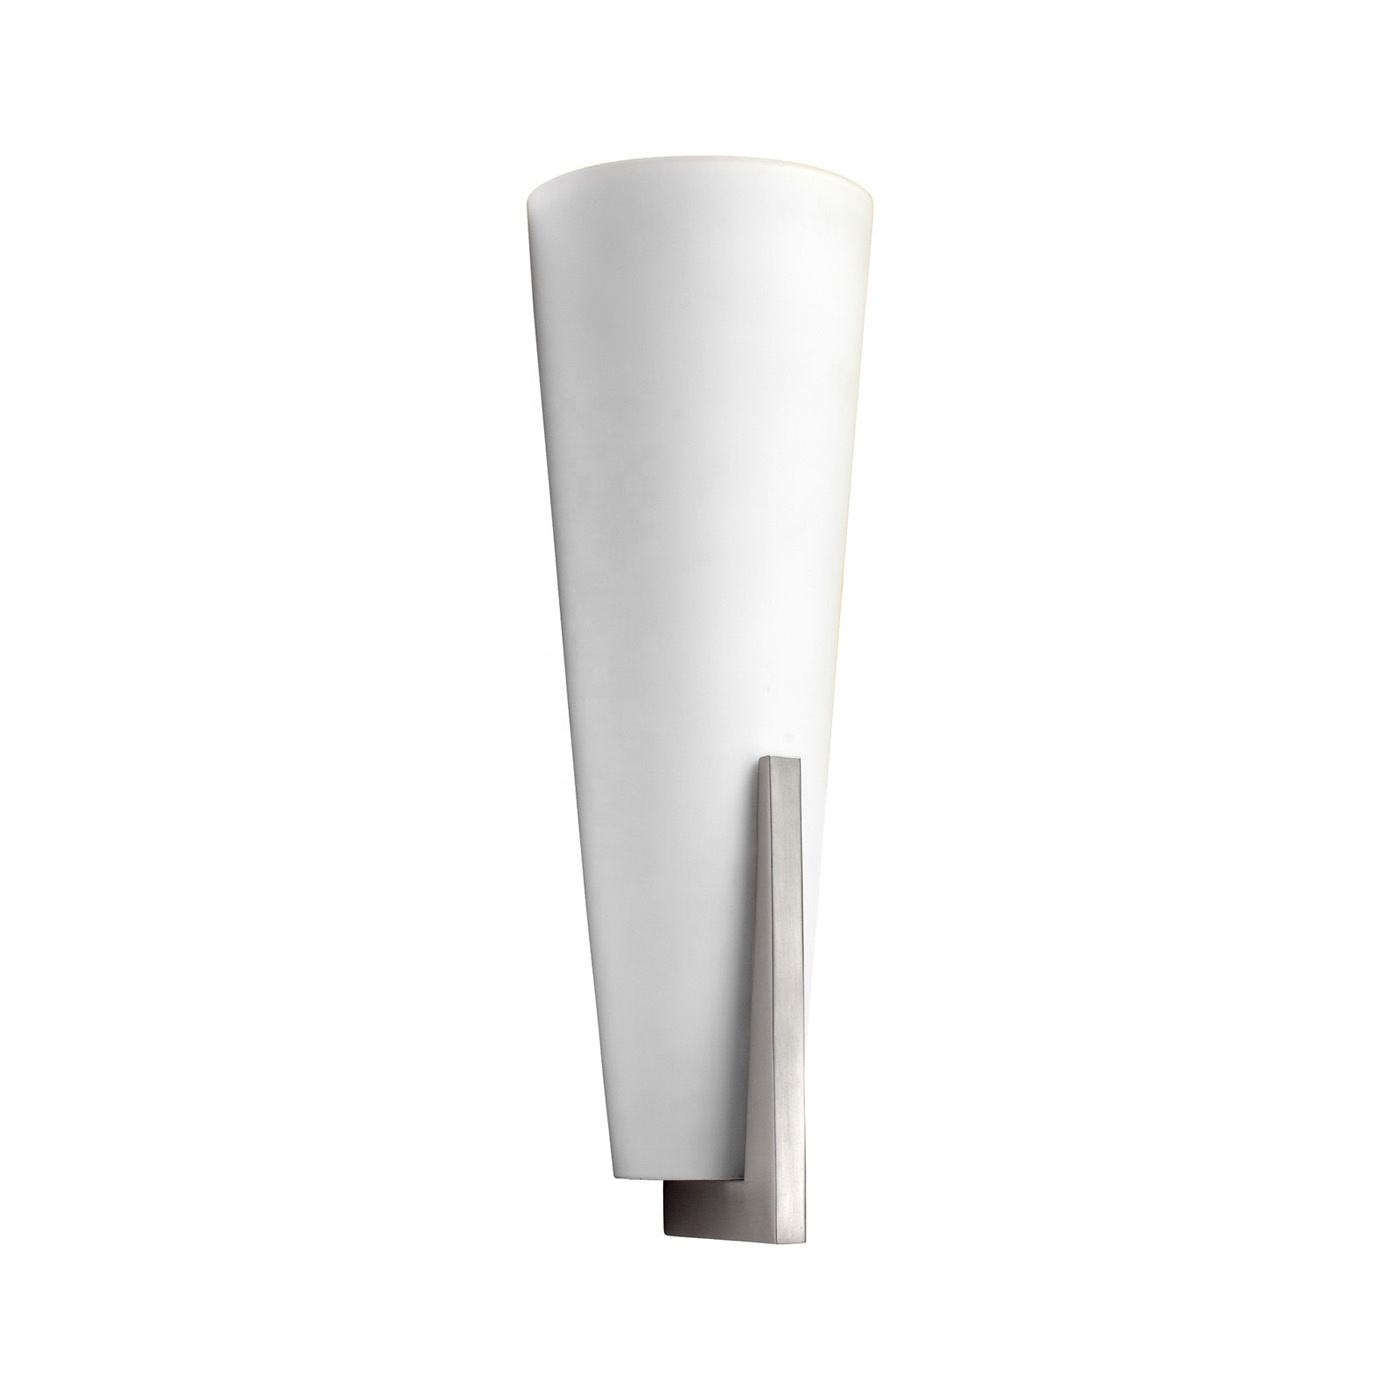 Wall Lamps Designer For Hotel UL CUL Listed Energy Saving Corridor Lamp For Hotel Or Glass Wall Sconce For Indoor W40315